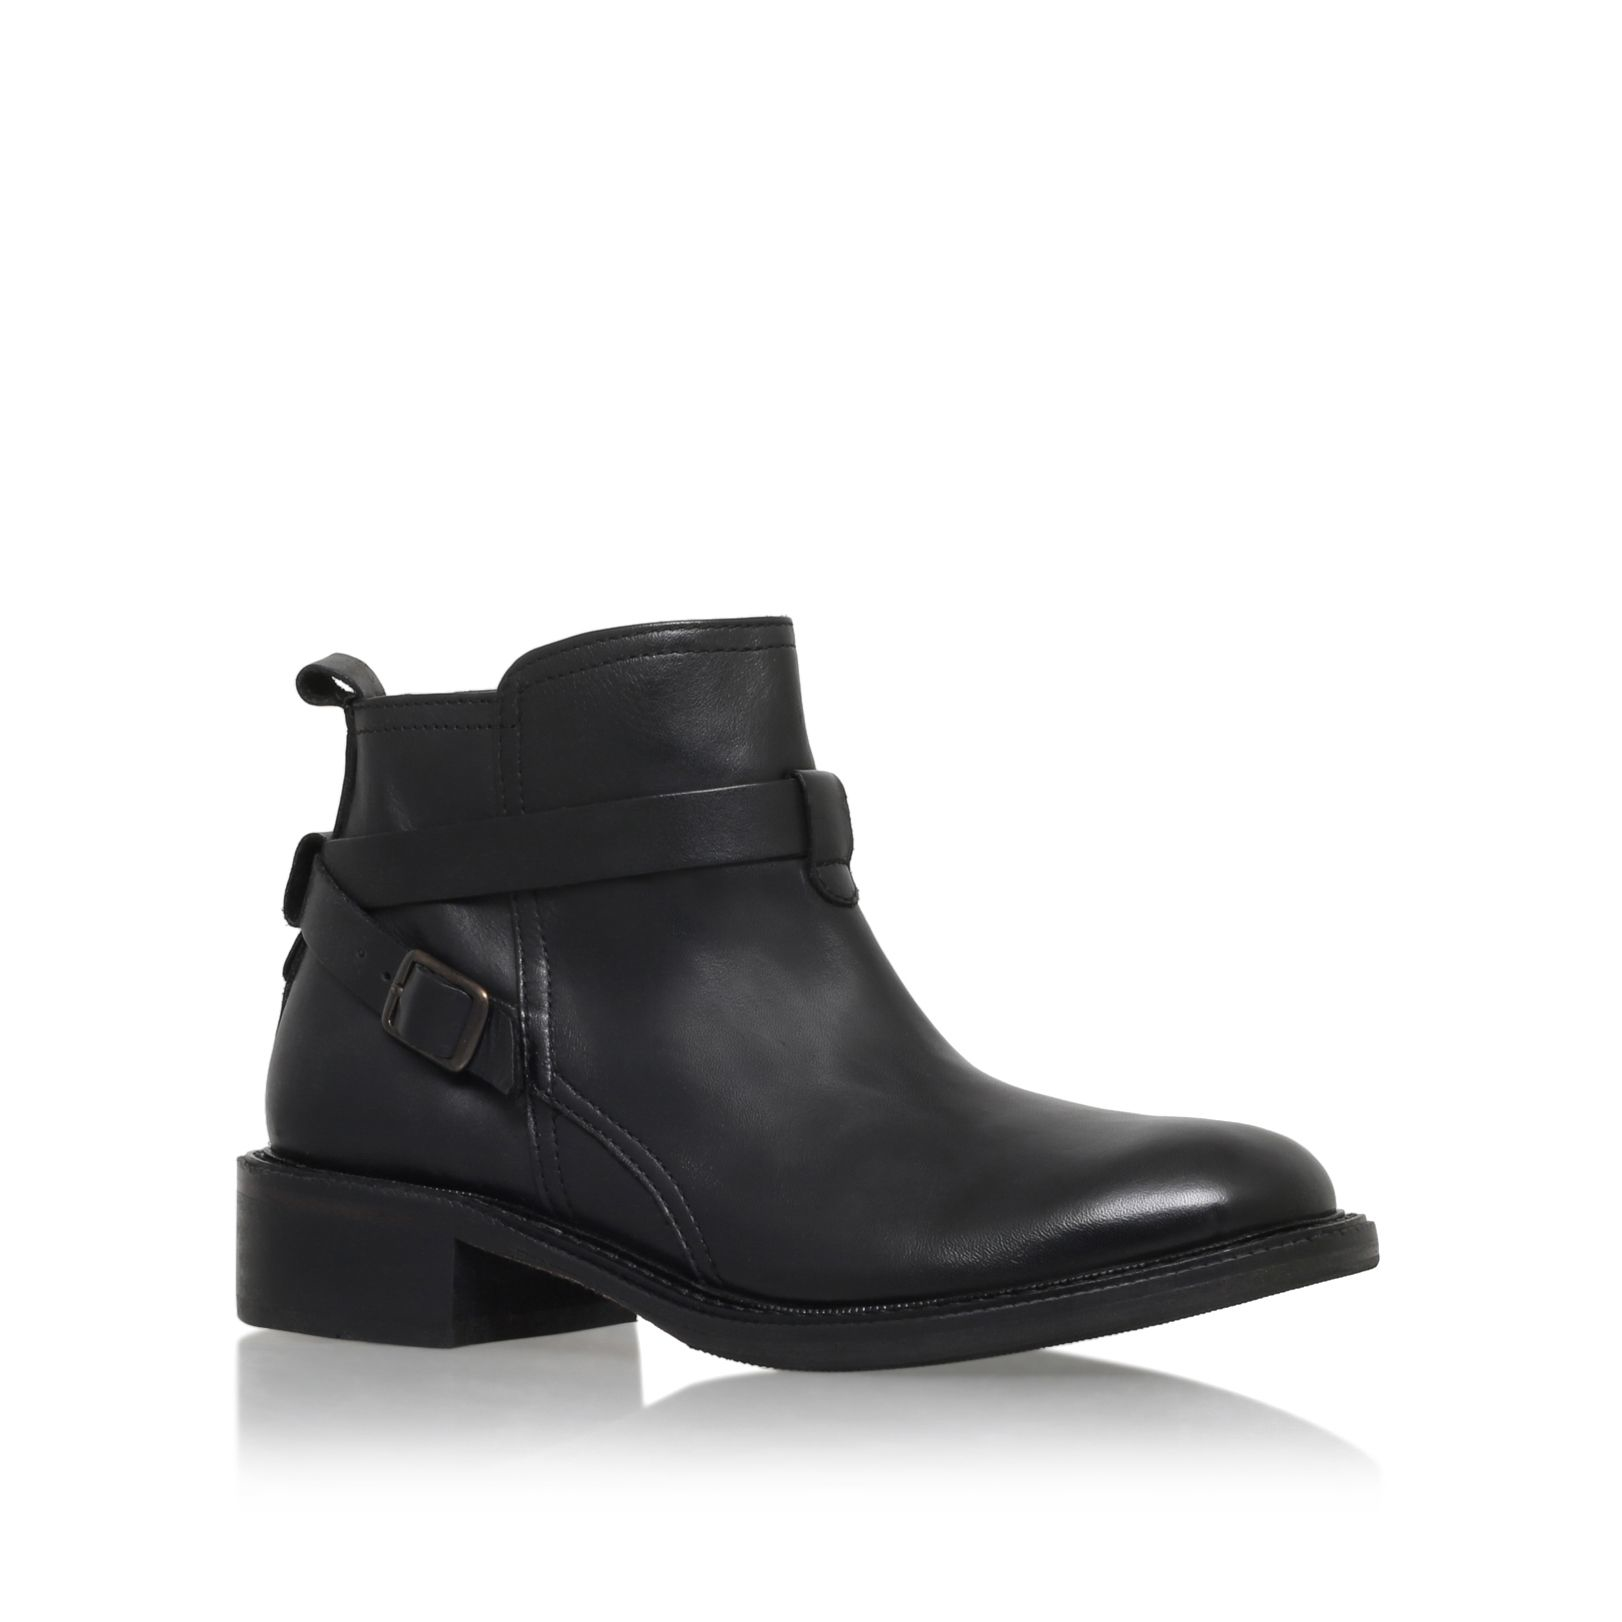 H by hudson Sachs Low Heel Ankle Boots in Black | Lyst